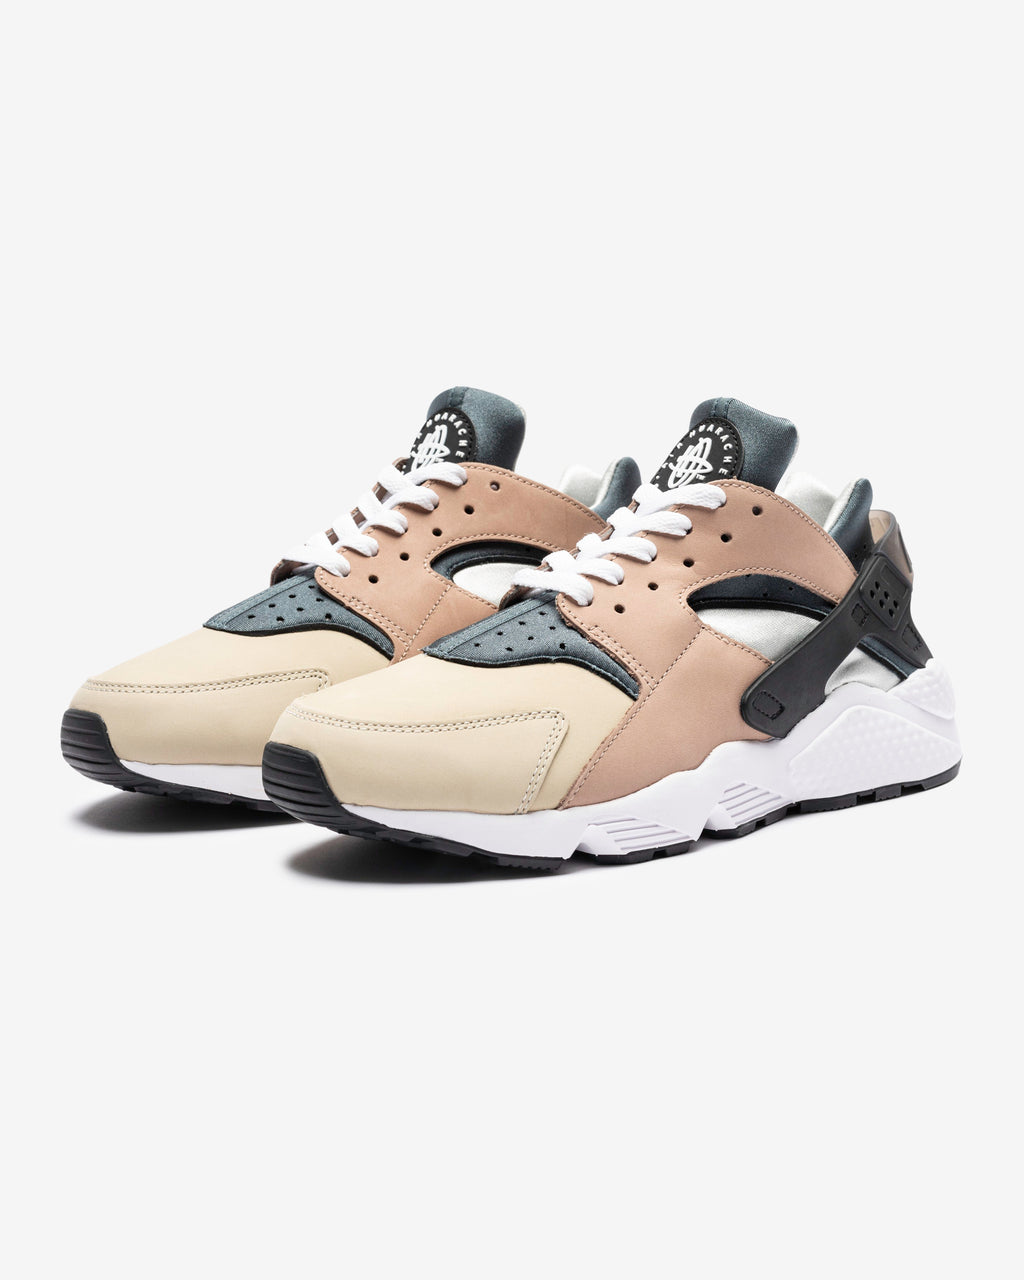 AIR HUARACHE - BISQUE/ STORMGREY/ ROPE/ WHITE